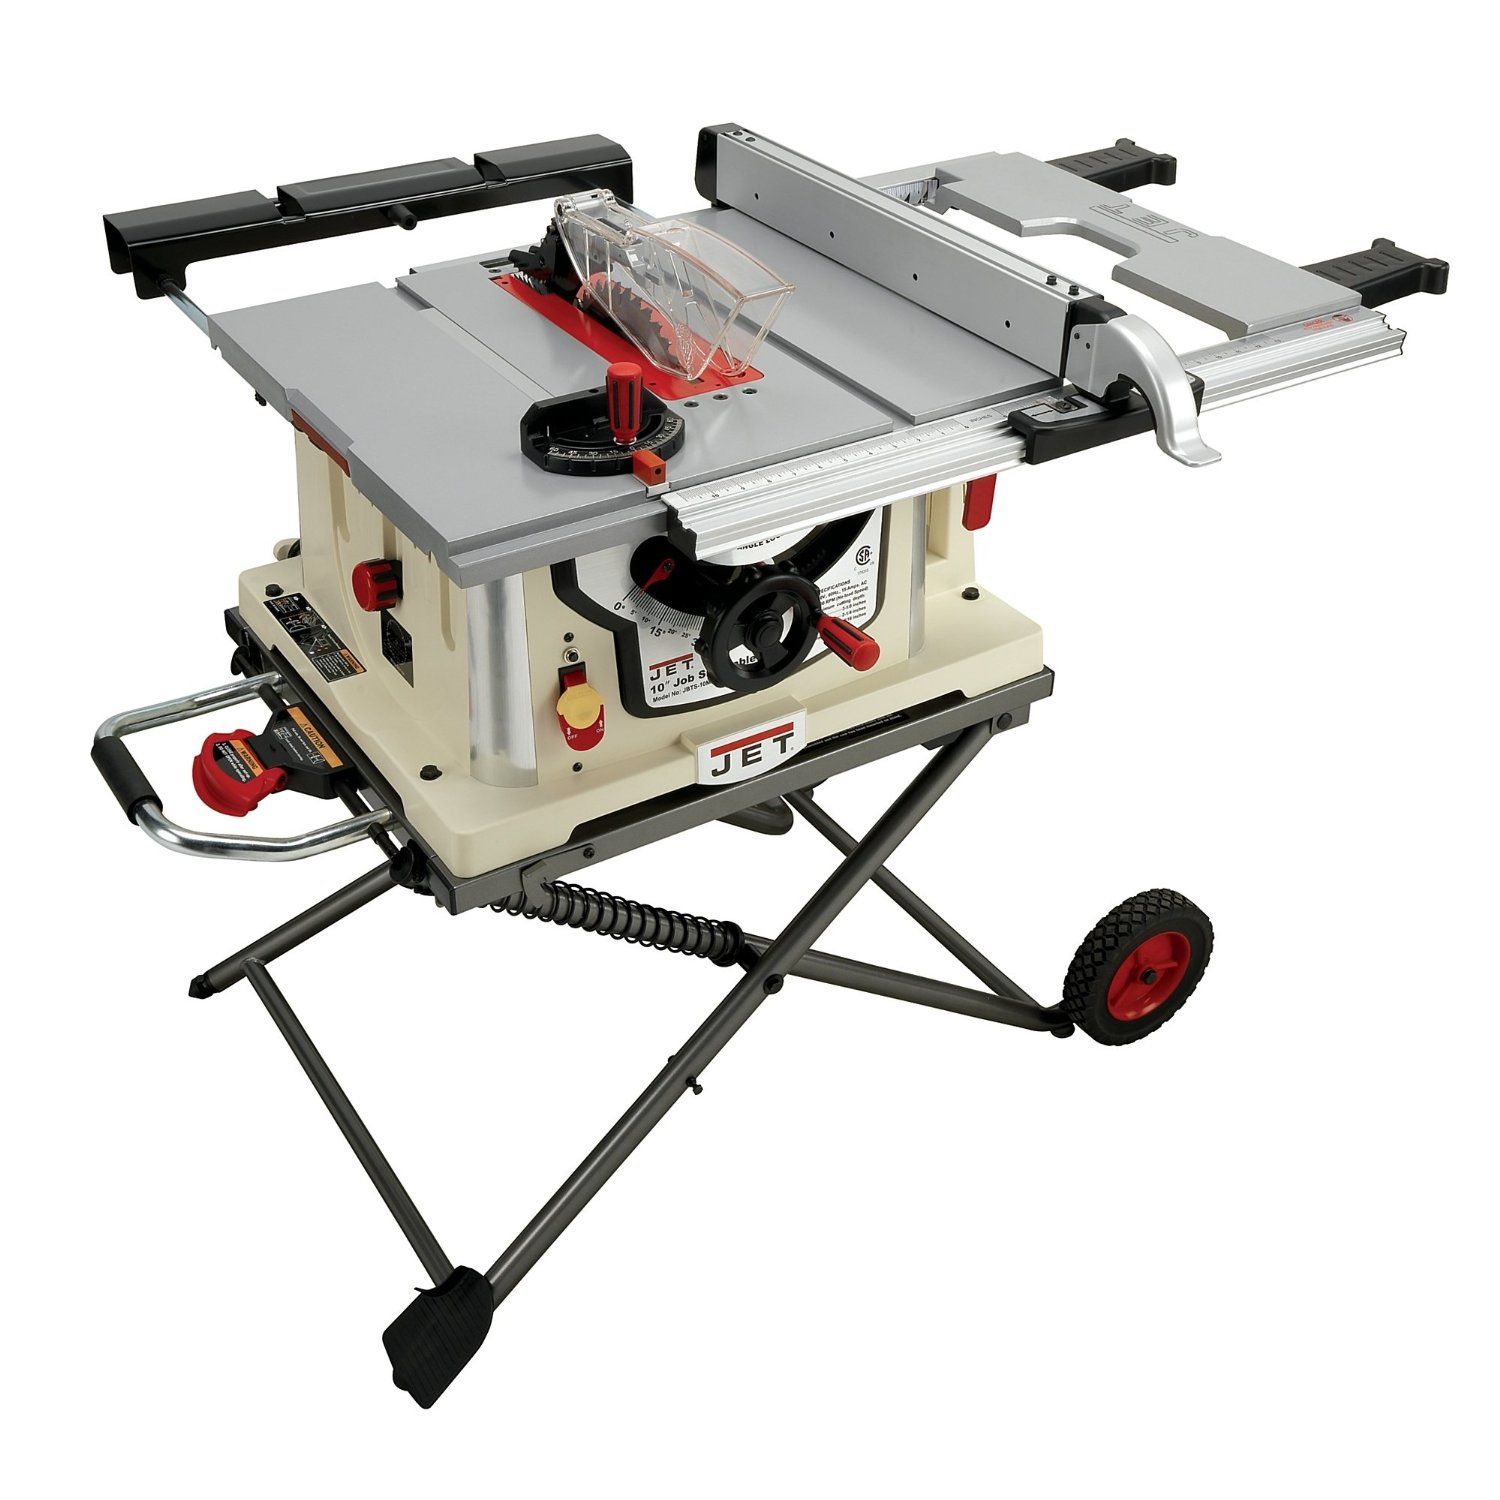 Jet Jbts 10mjs Review Table Saw Central